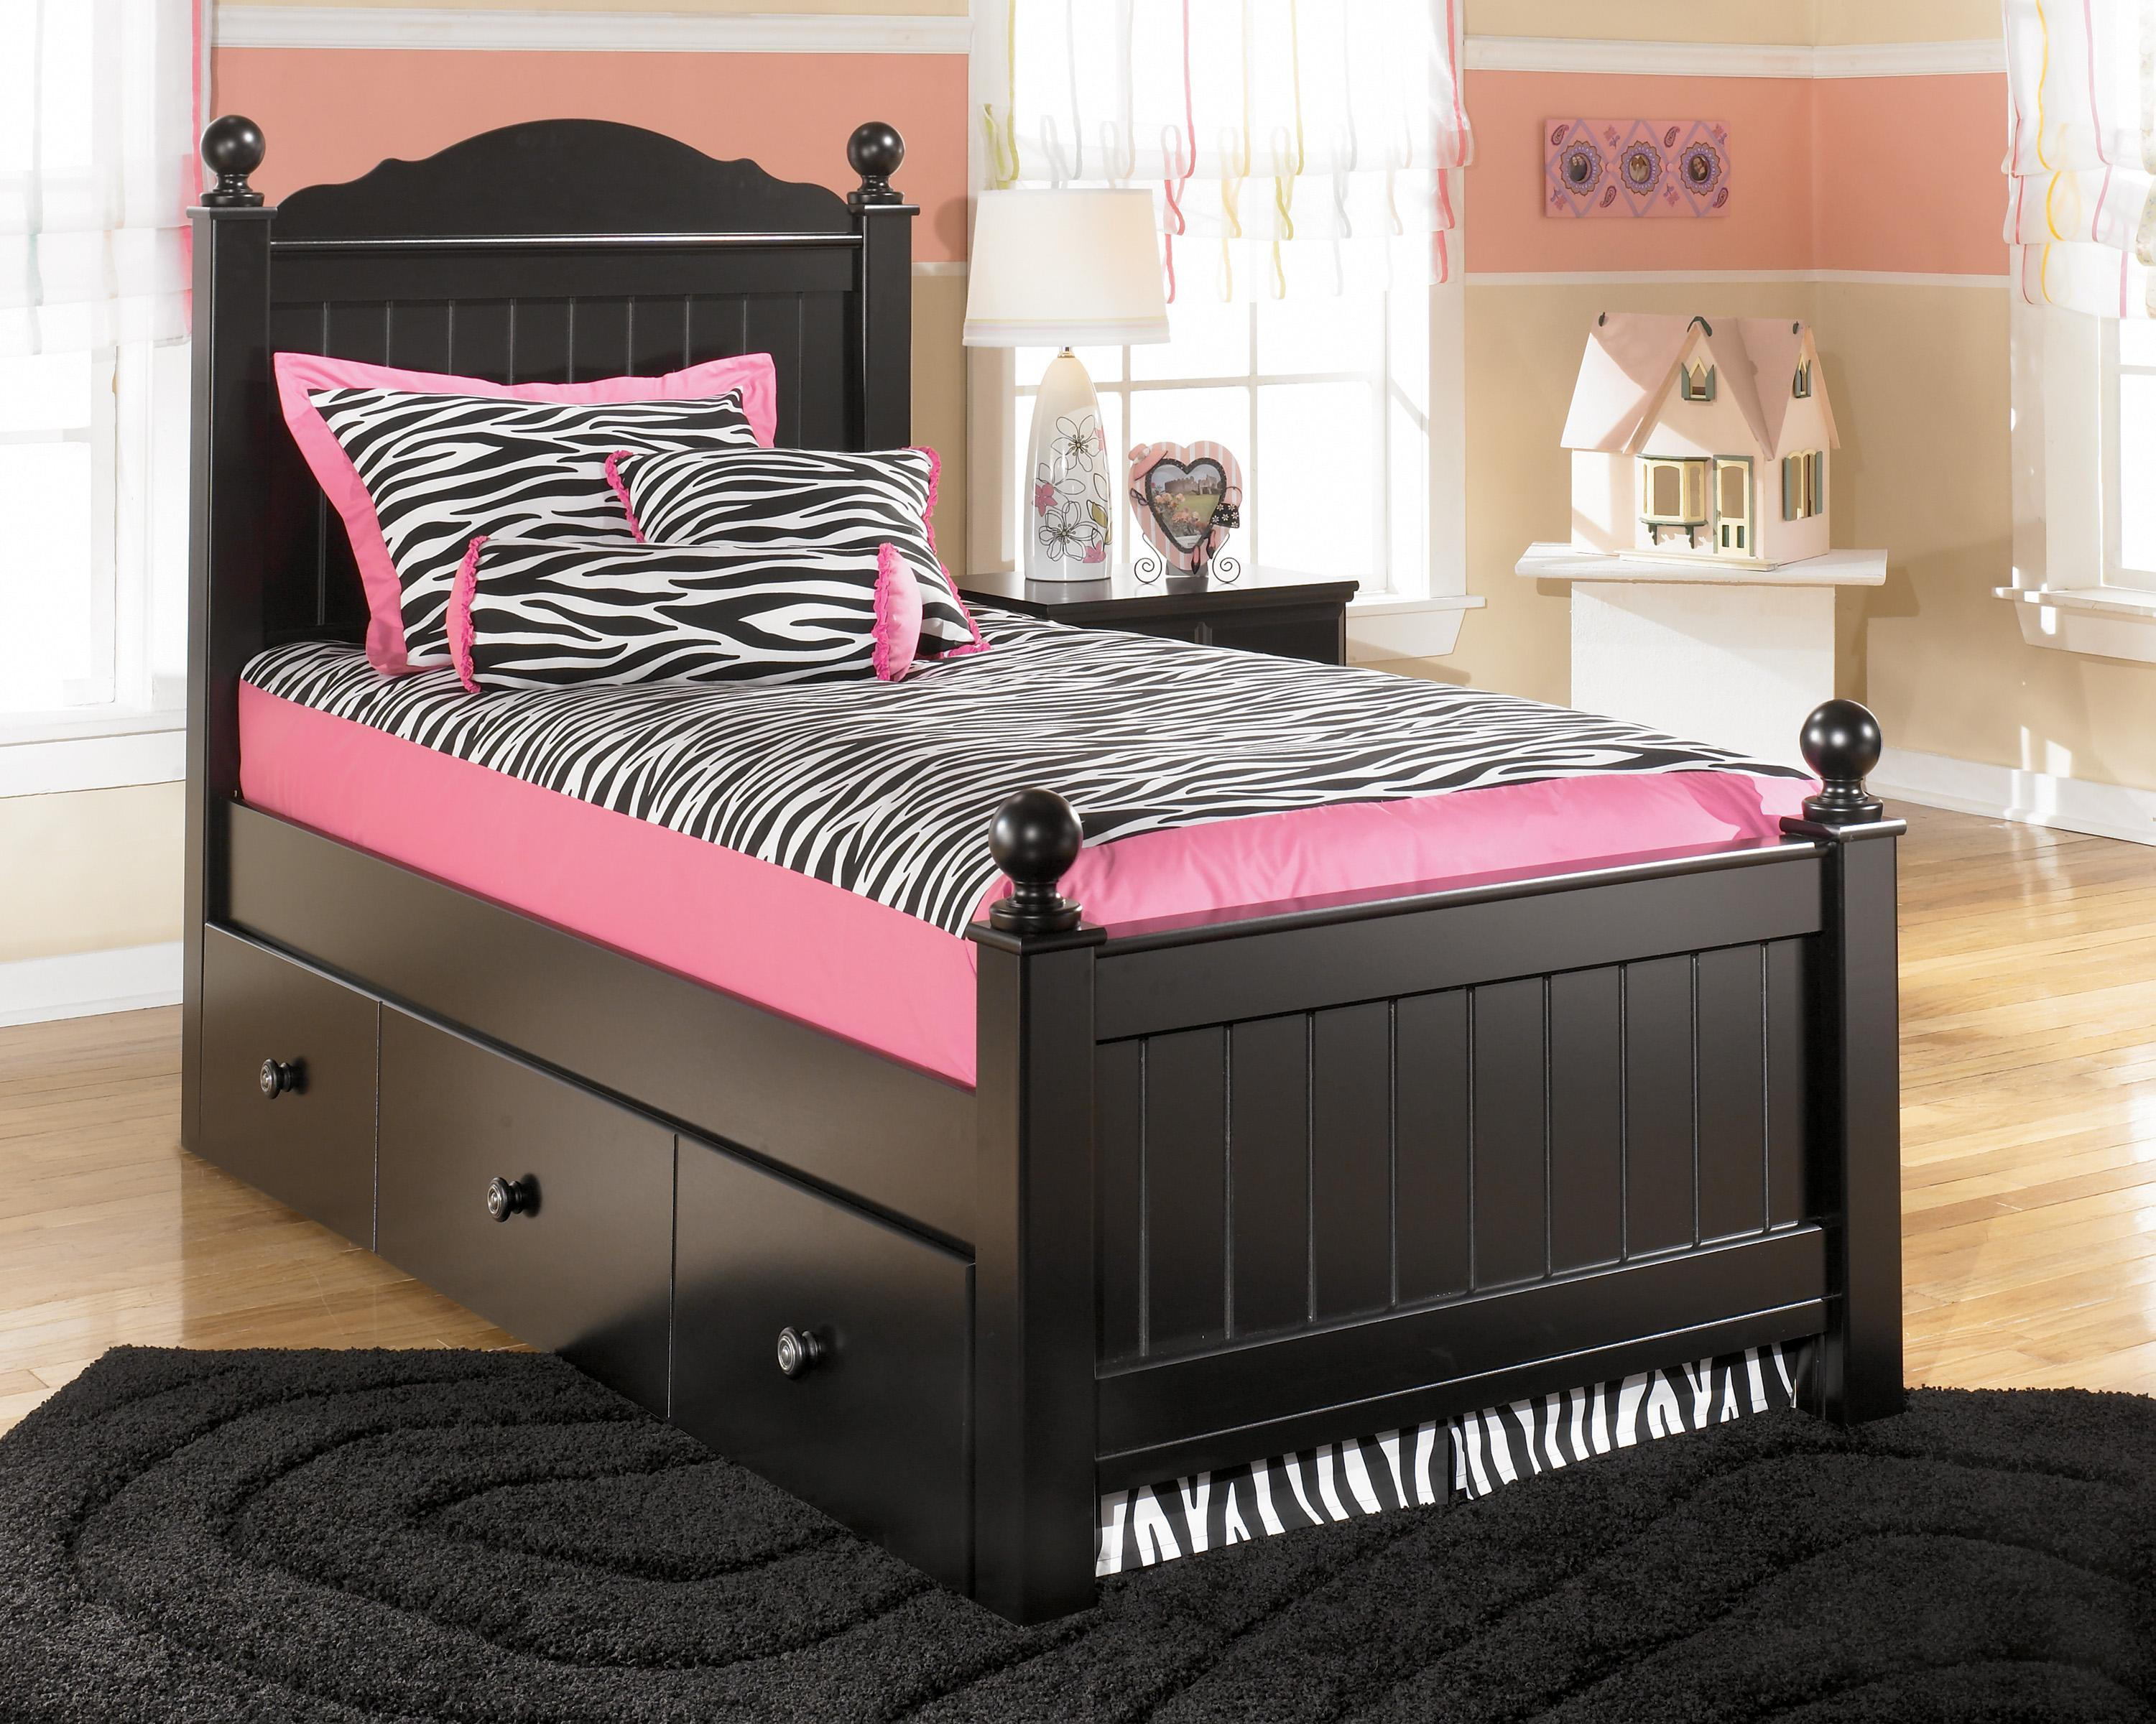 Signature Design by Ashley Jaidyn Twin Poster Bed with Trundle Panel - Item Number: B150-53+52+83+51+B100-82